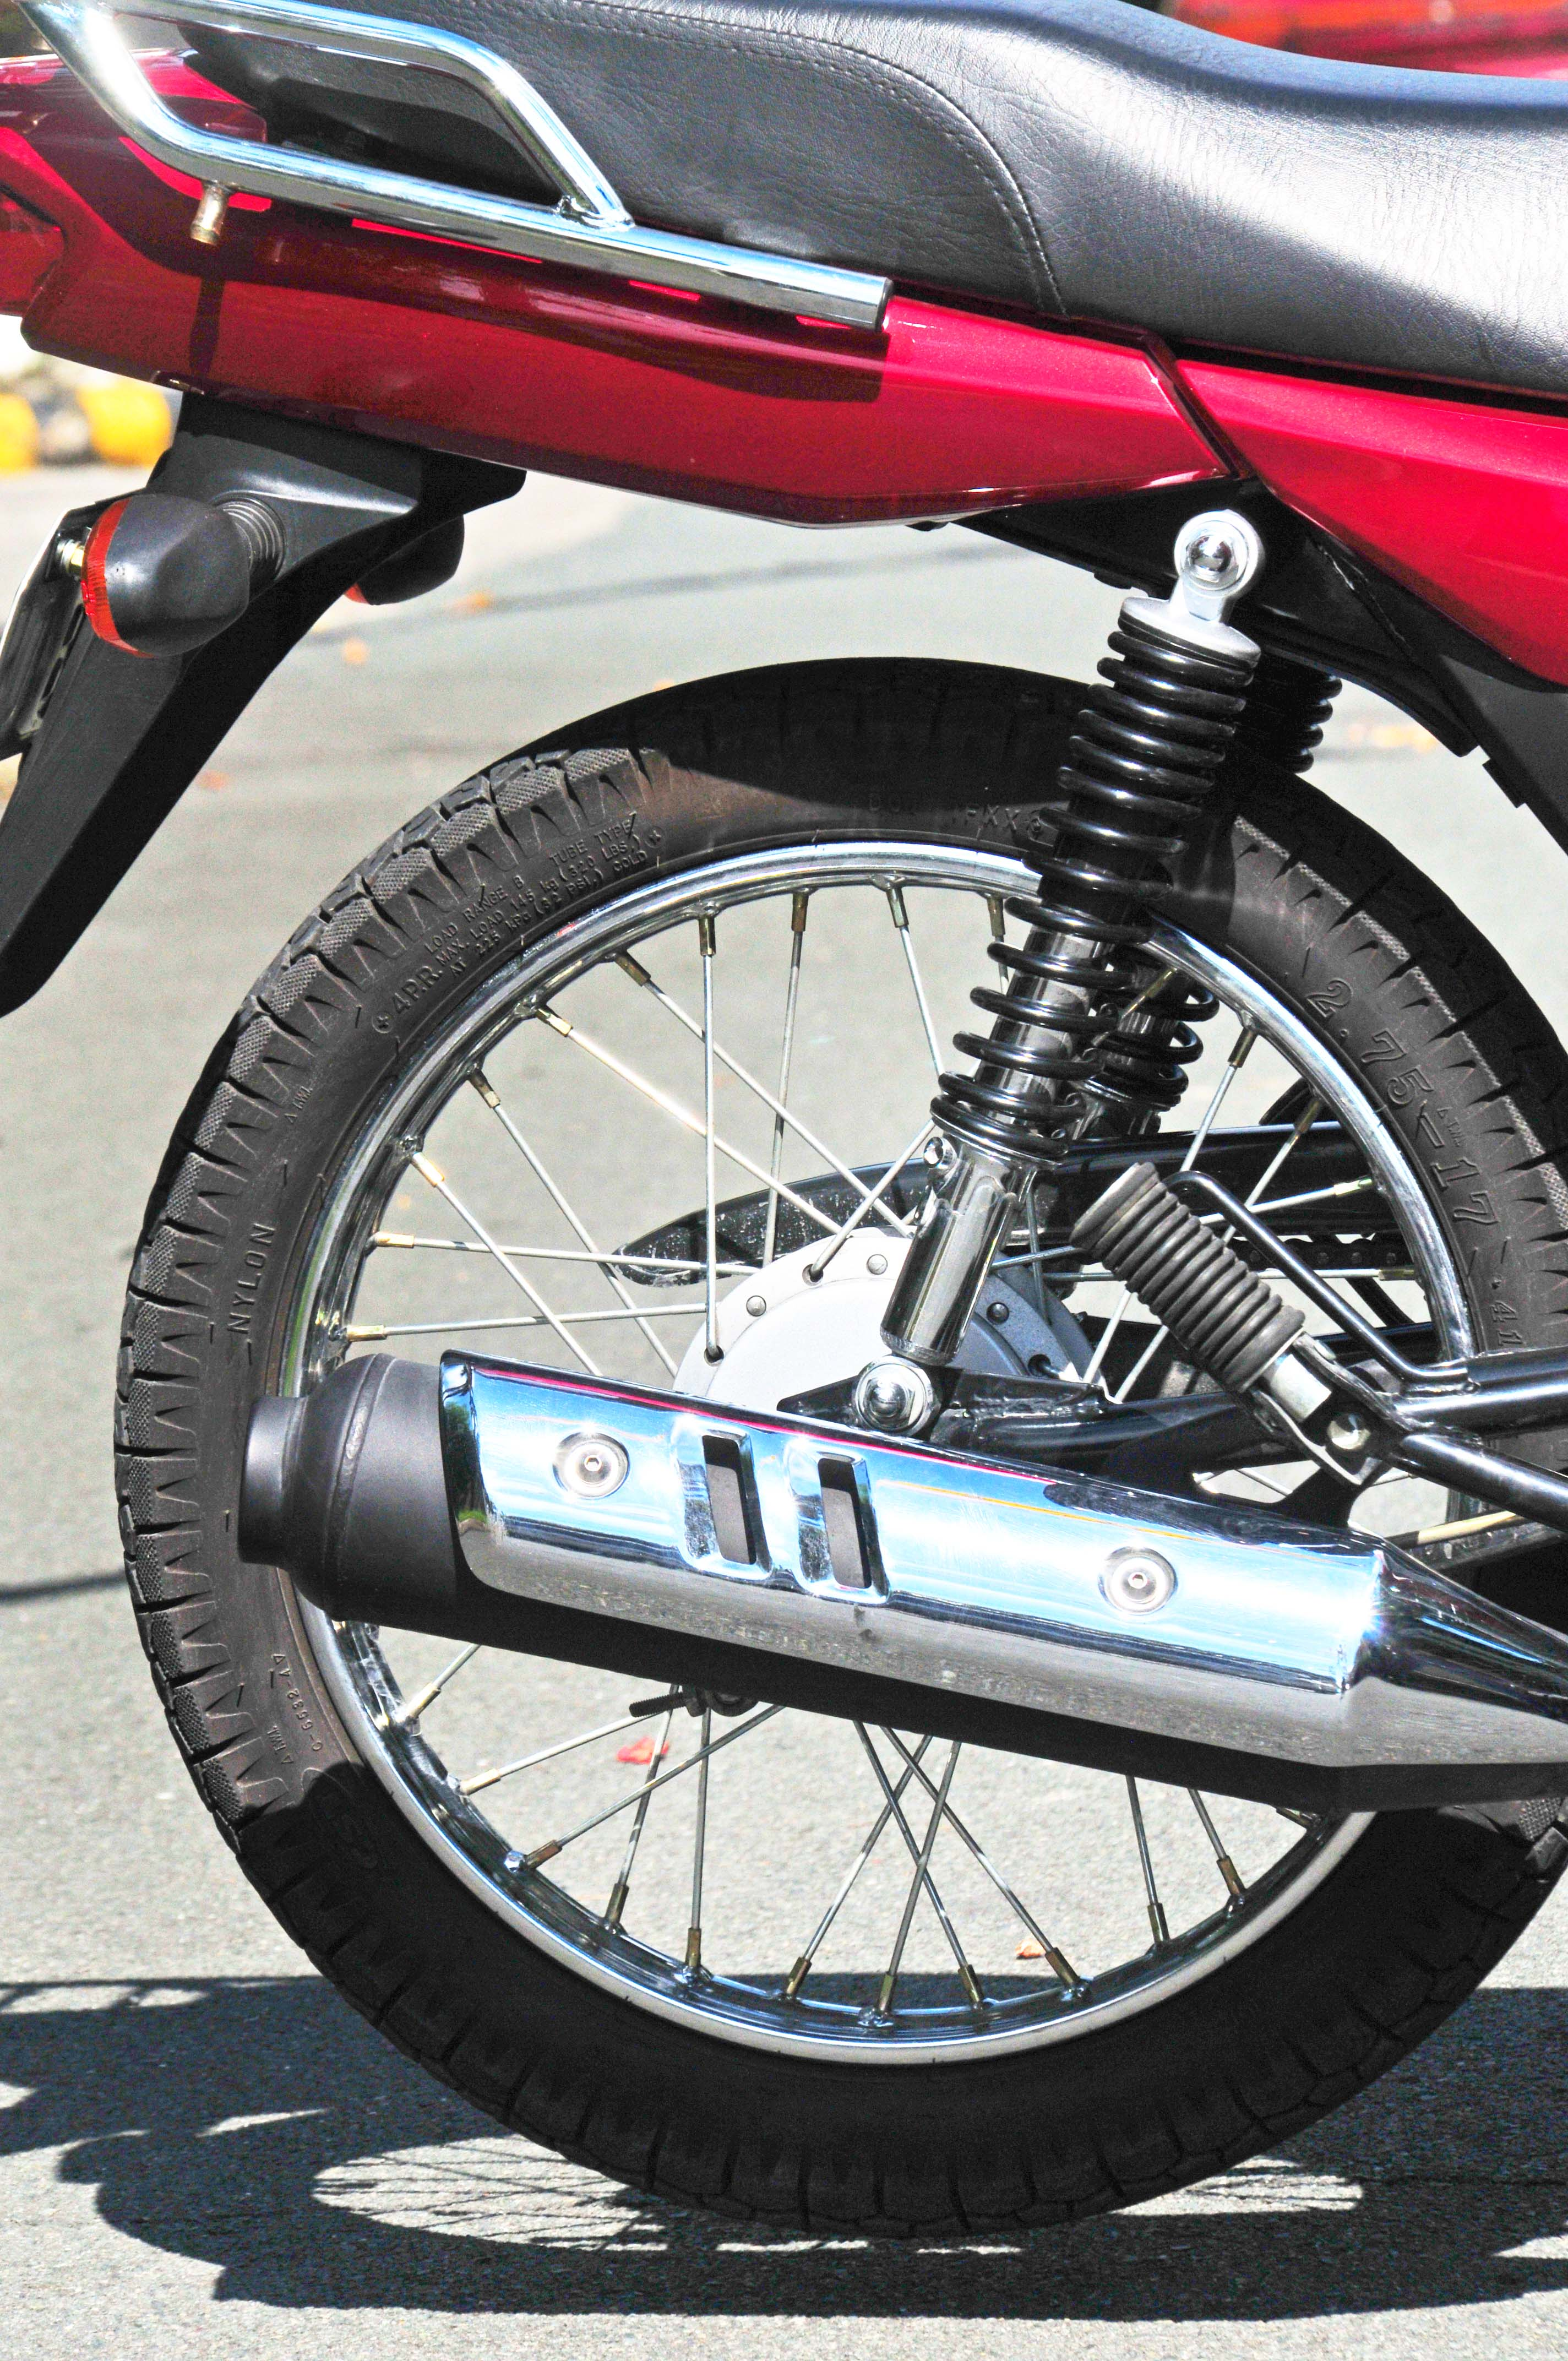 Suzuki GD 110 – Charming, comfortable and able commuter